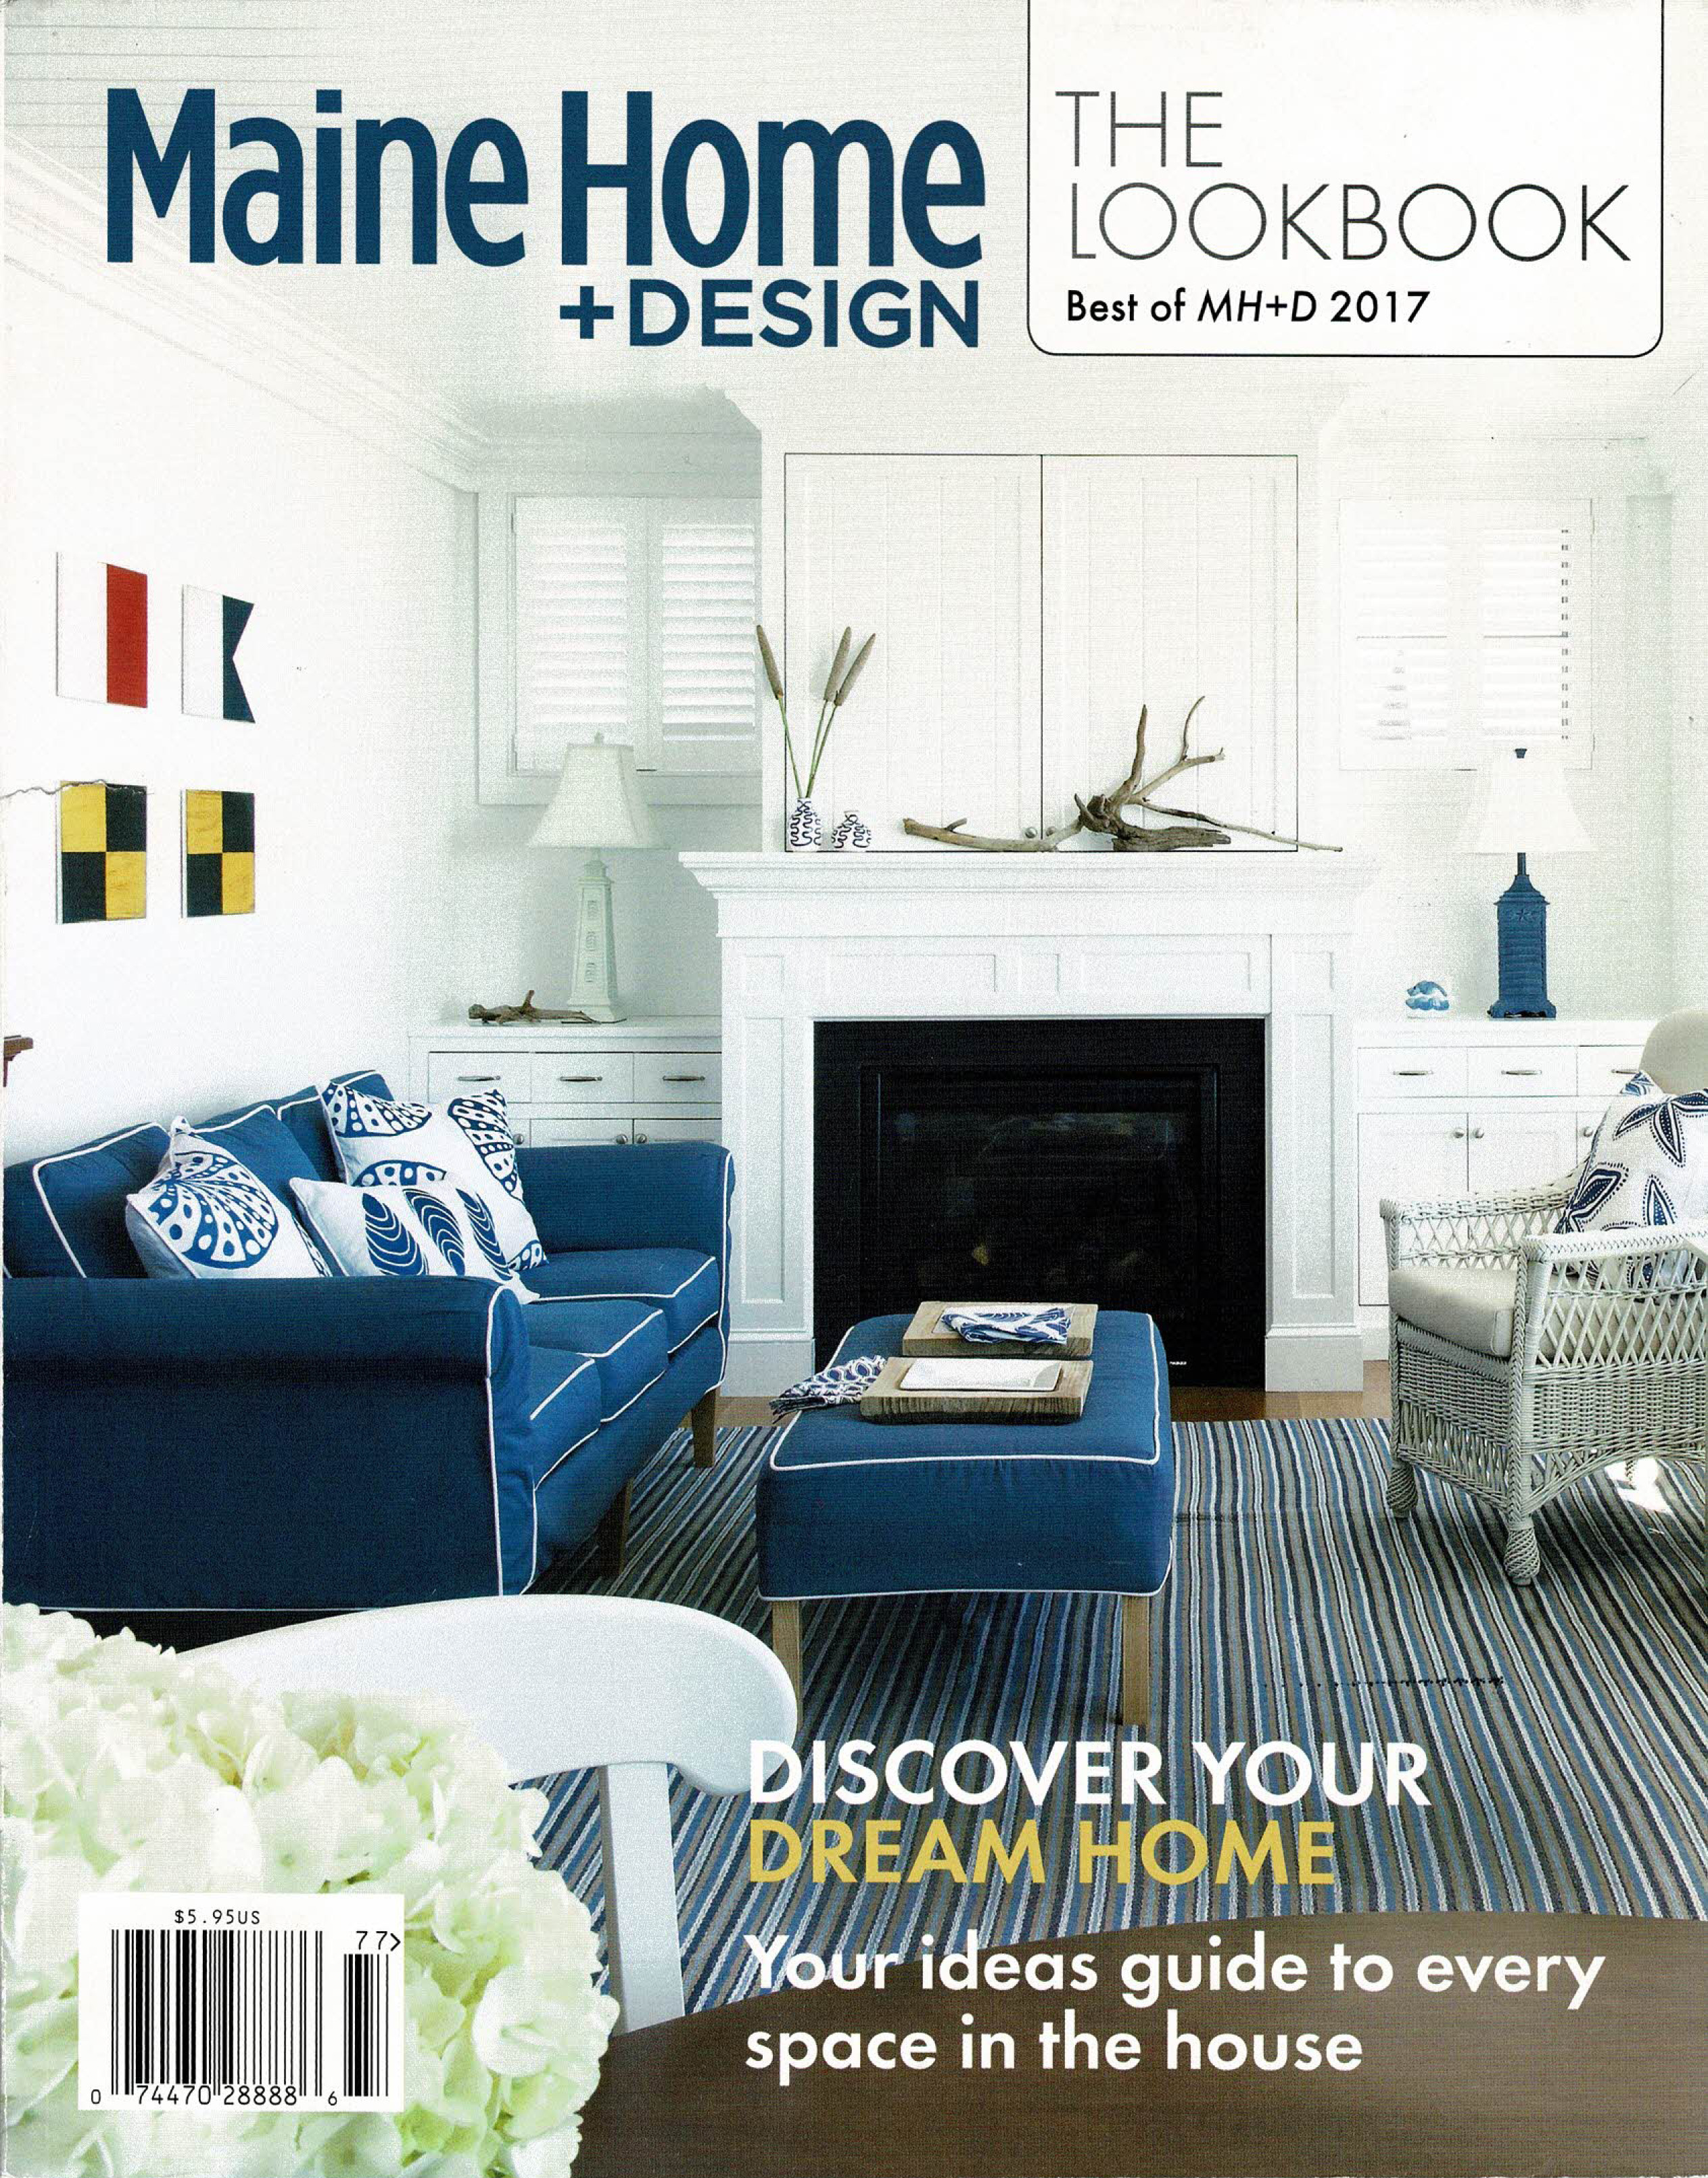 Maine Home & Design Lookbook, 2017